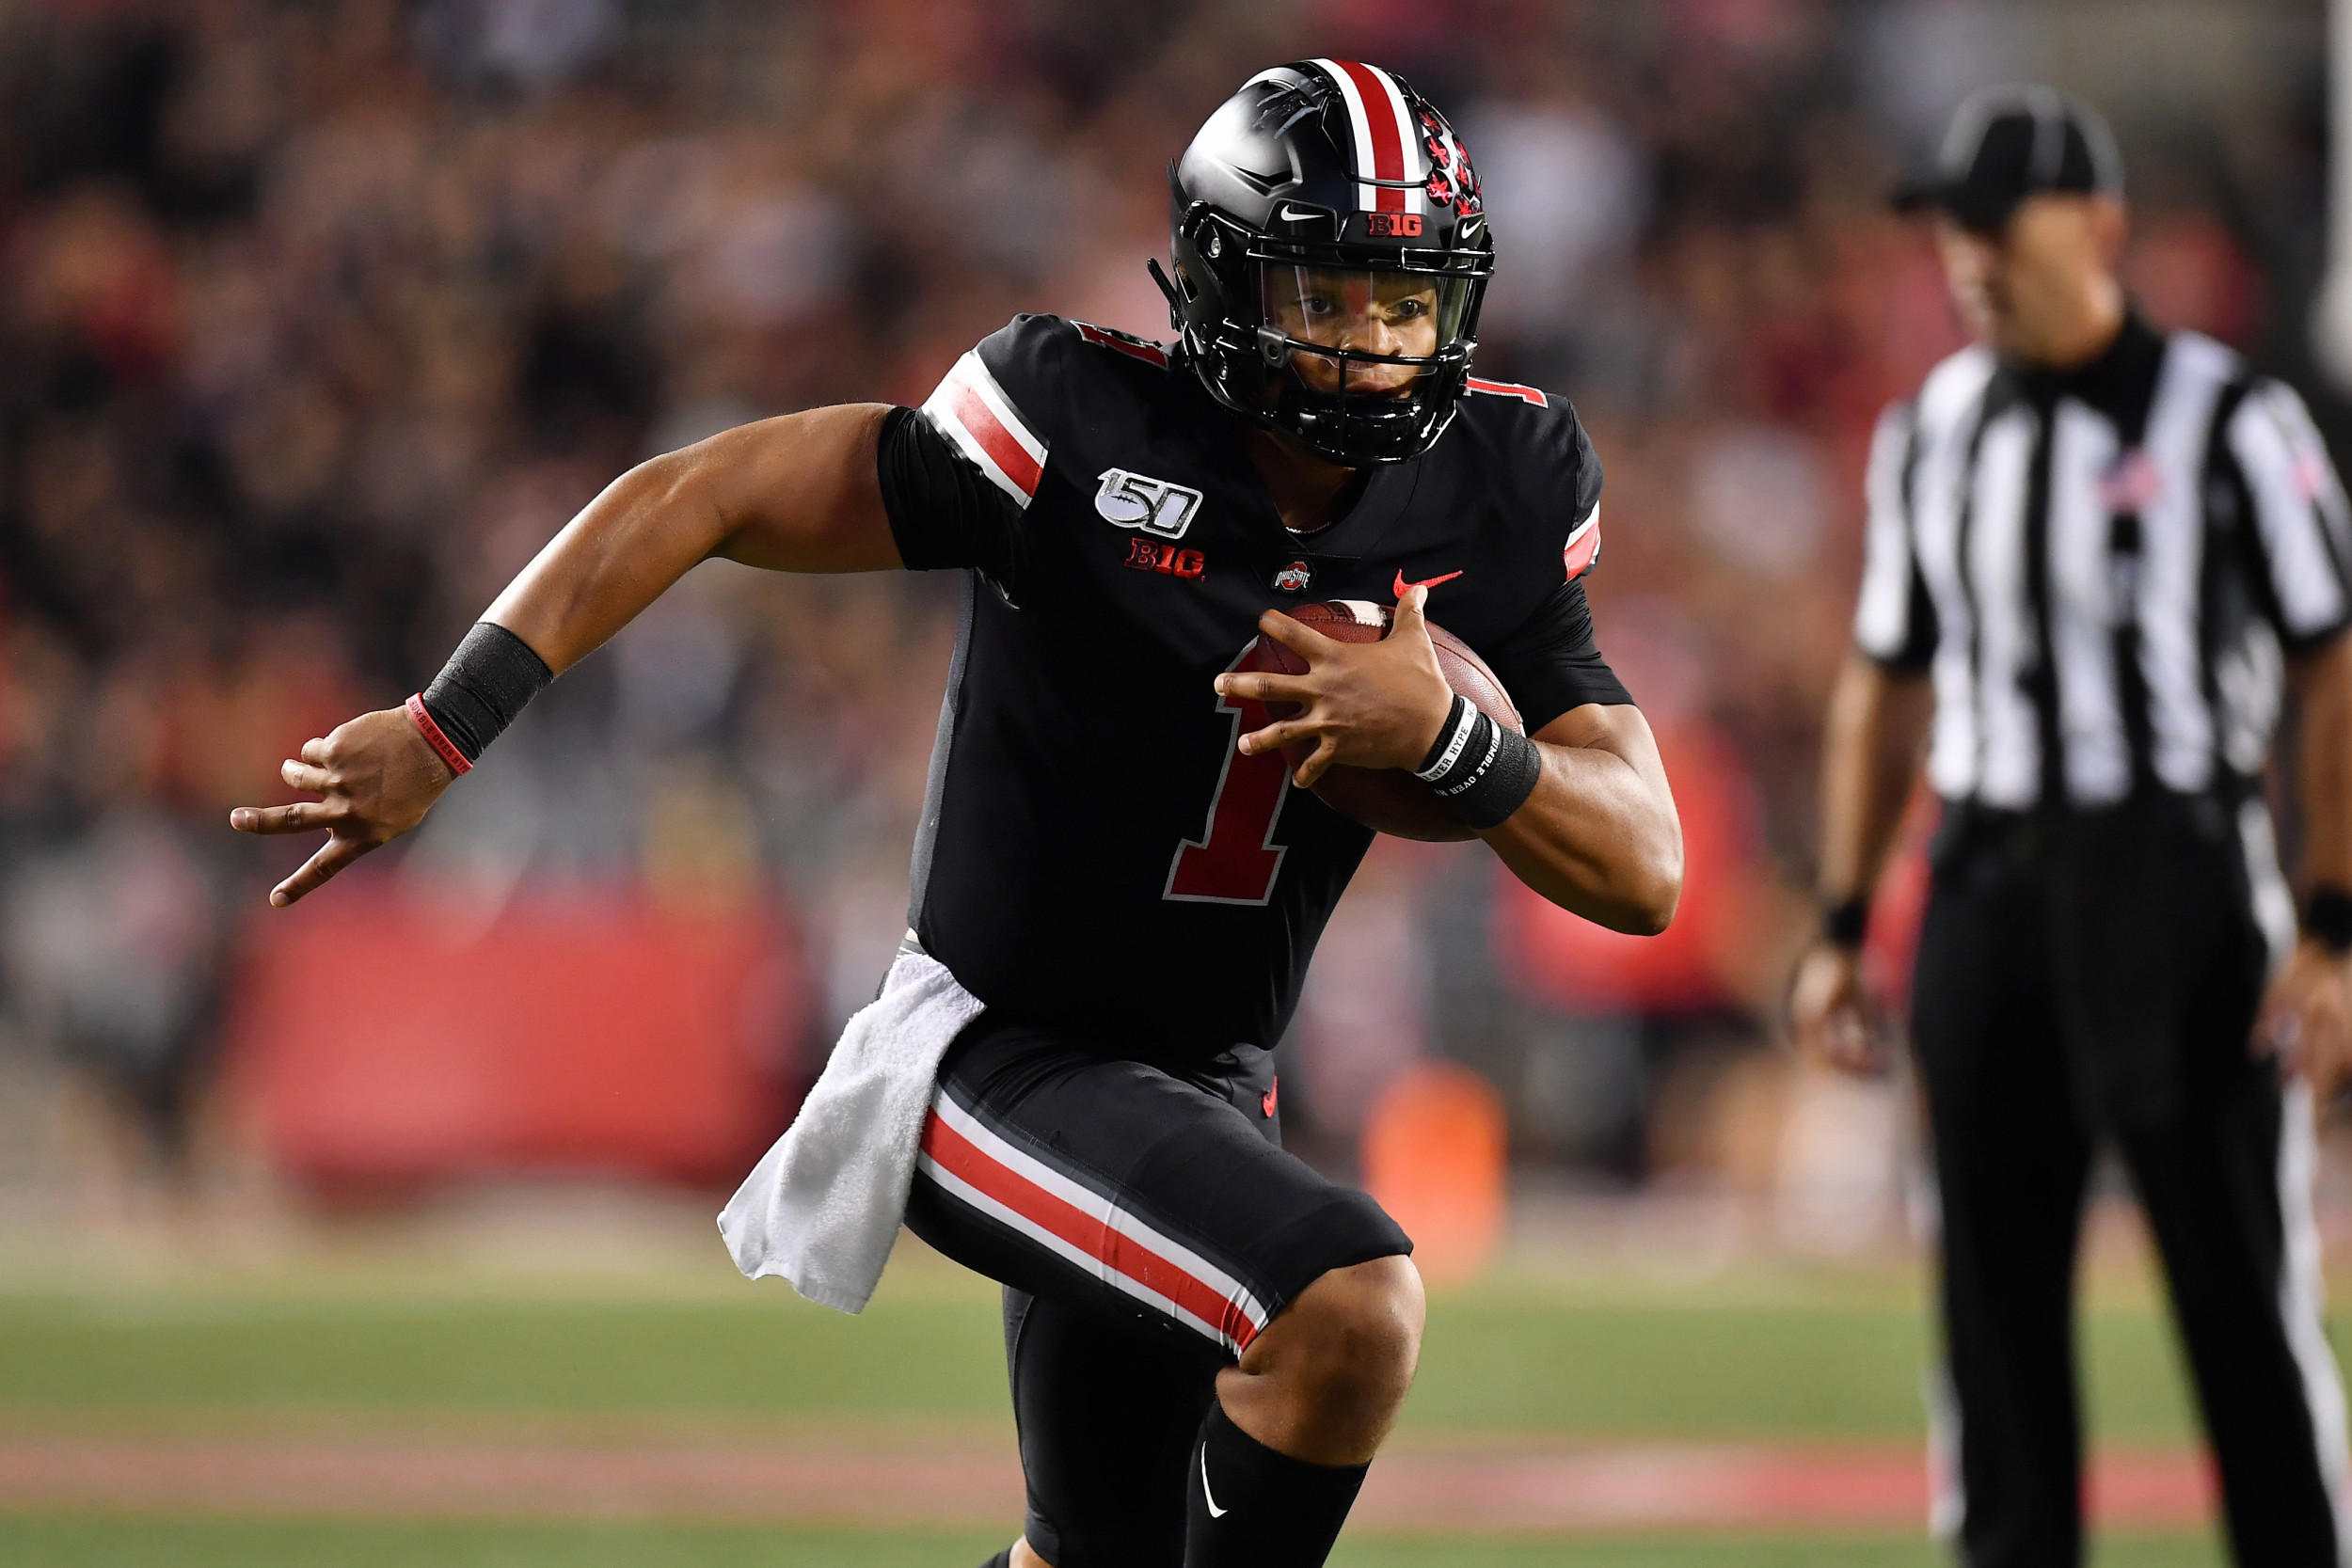 College Football 2019 Where To Watch Ohio State Vs Northwestern Tv Channel Live Stream And Odds